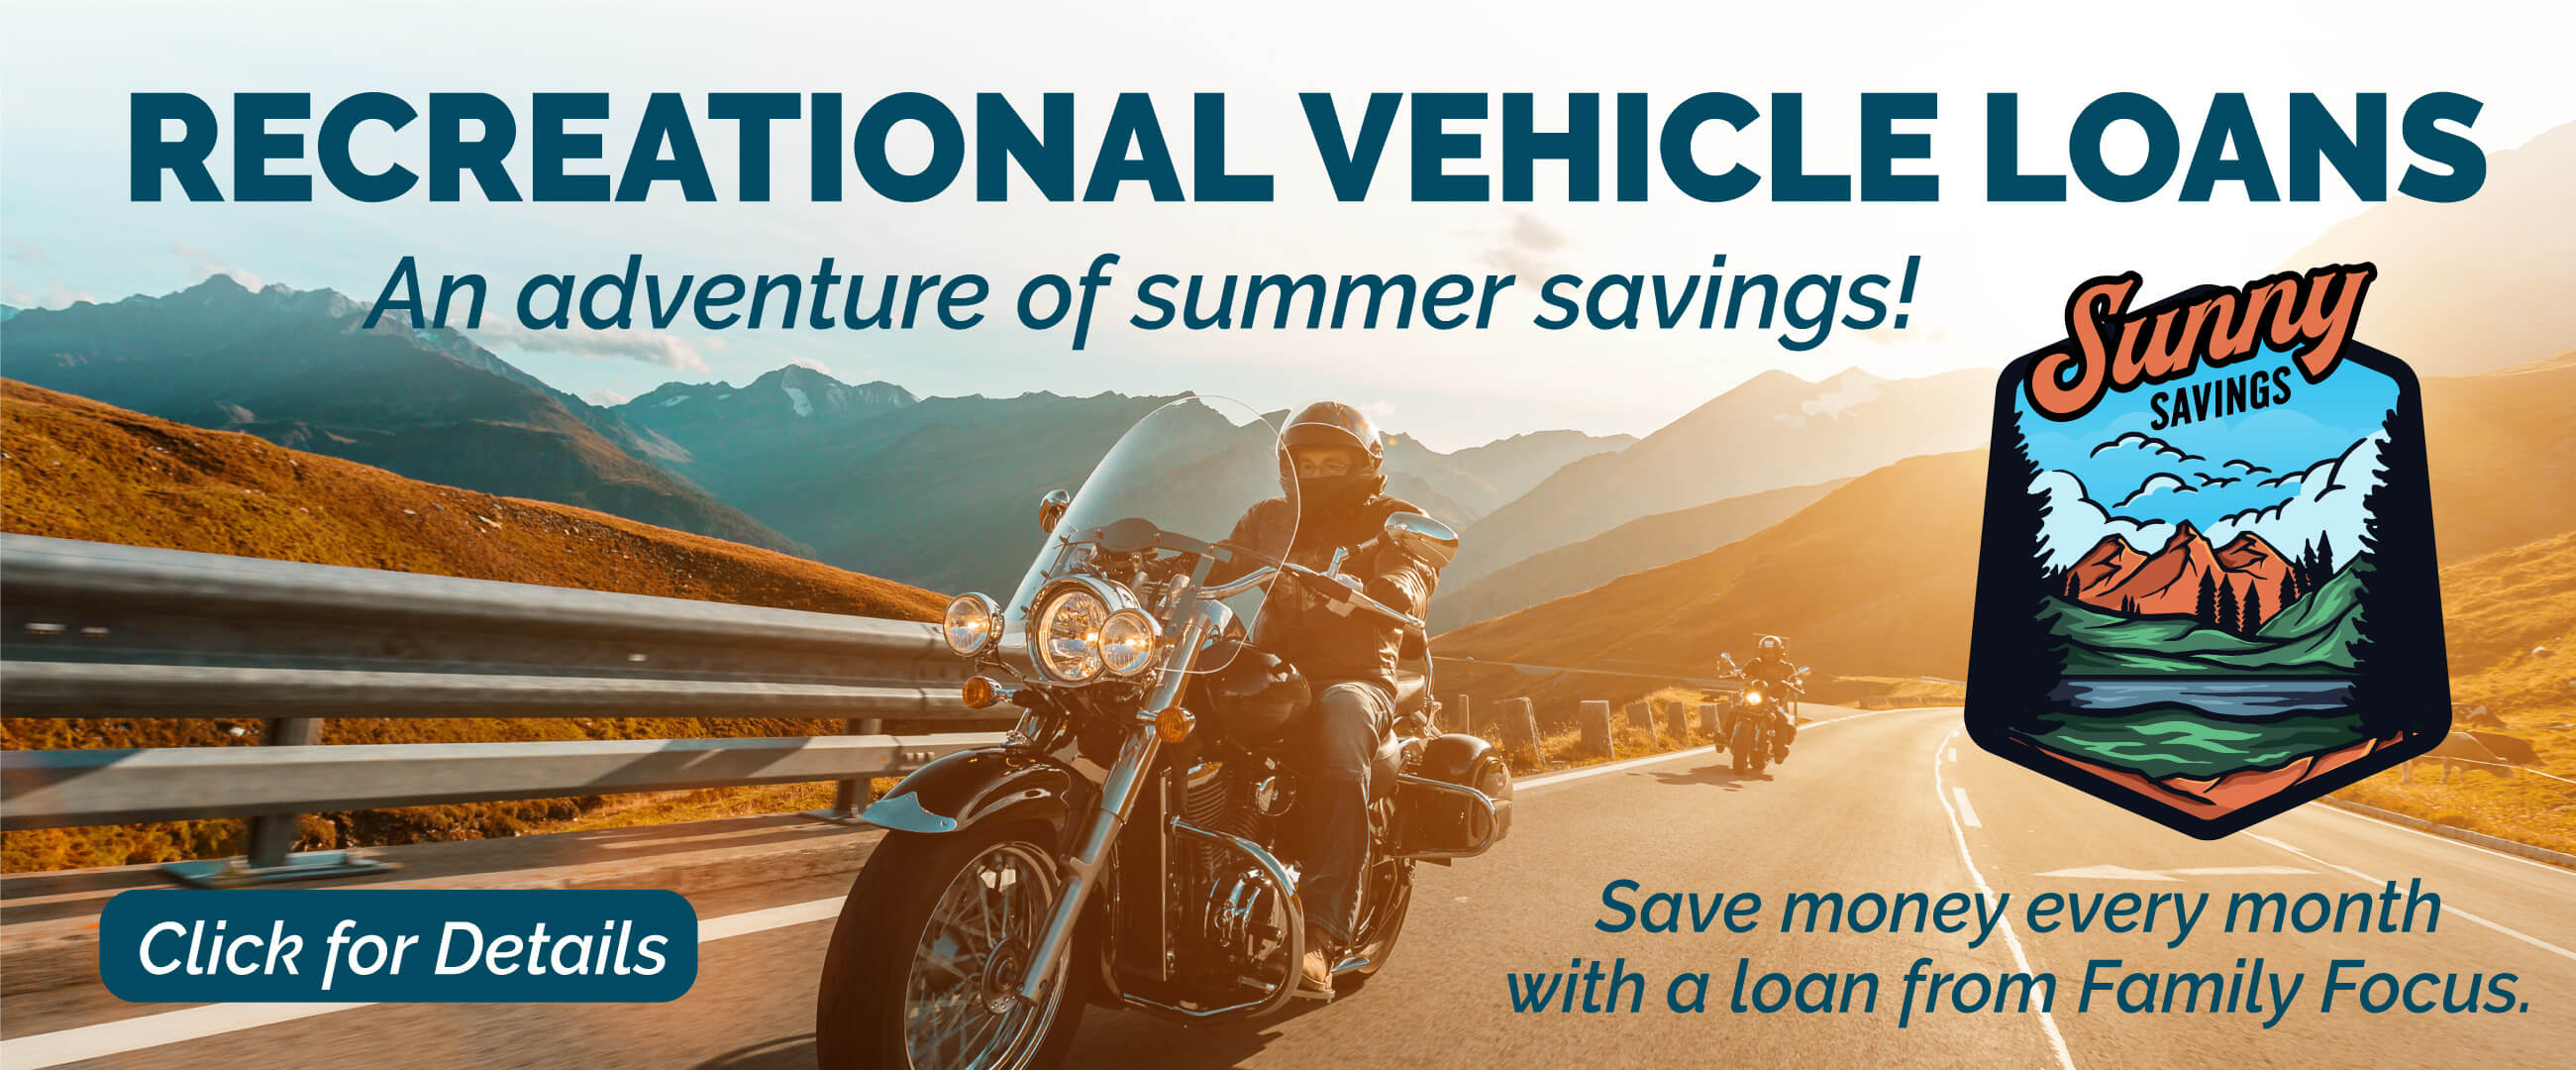 Recreational Vehicle Promotion